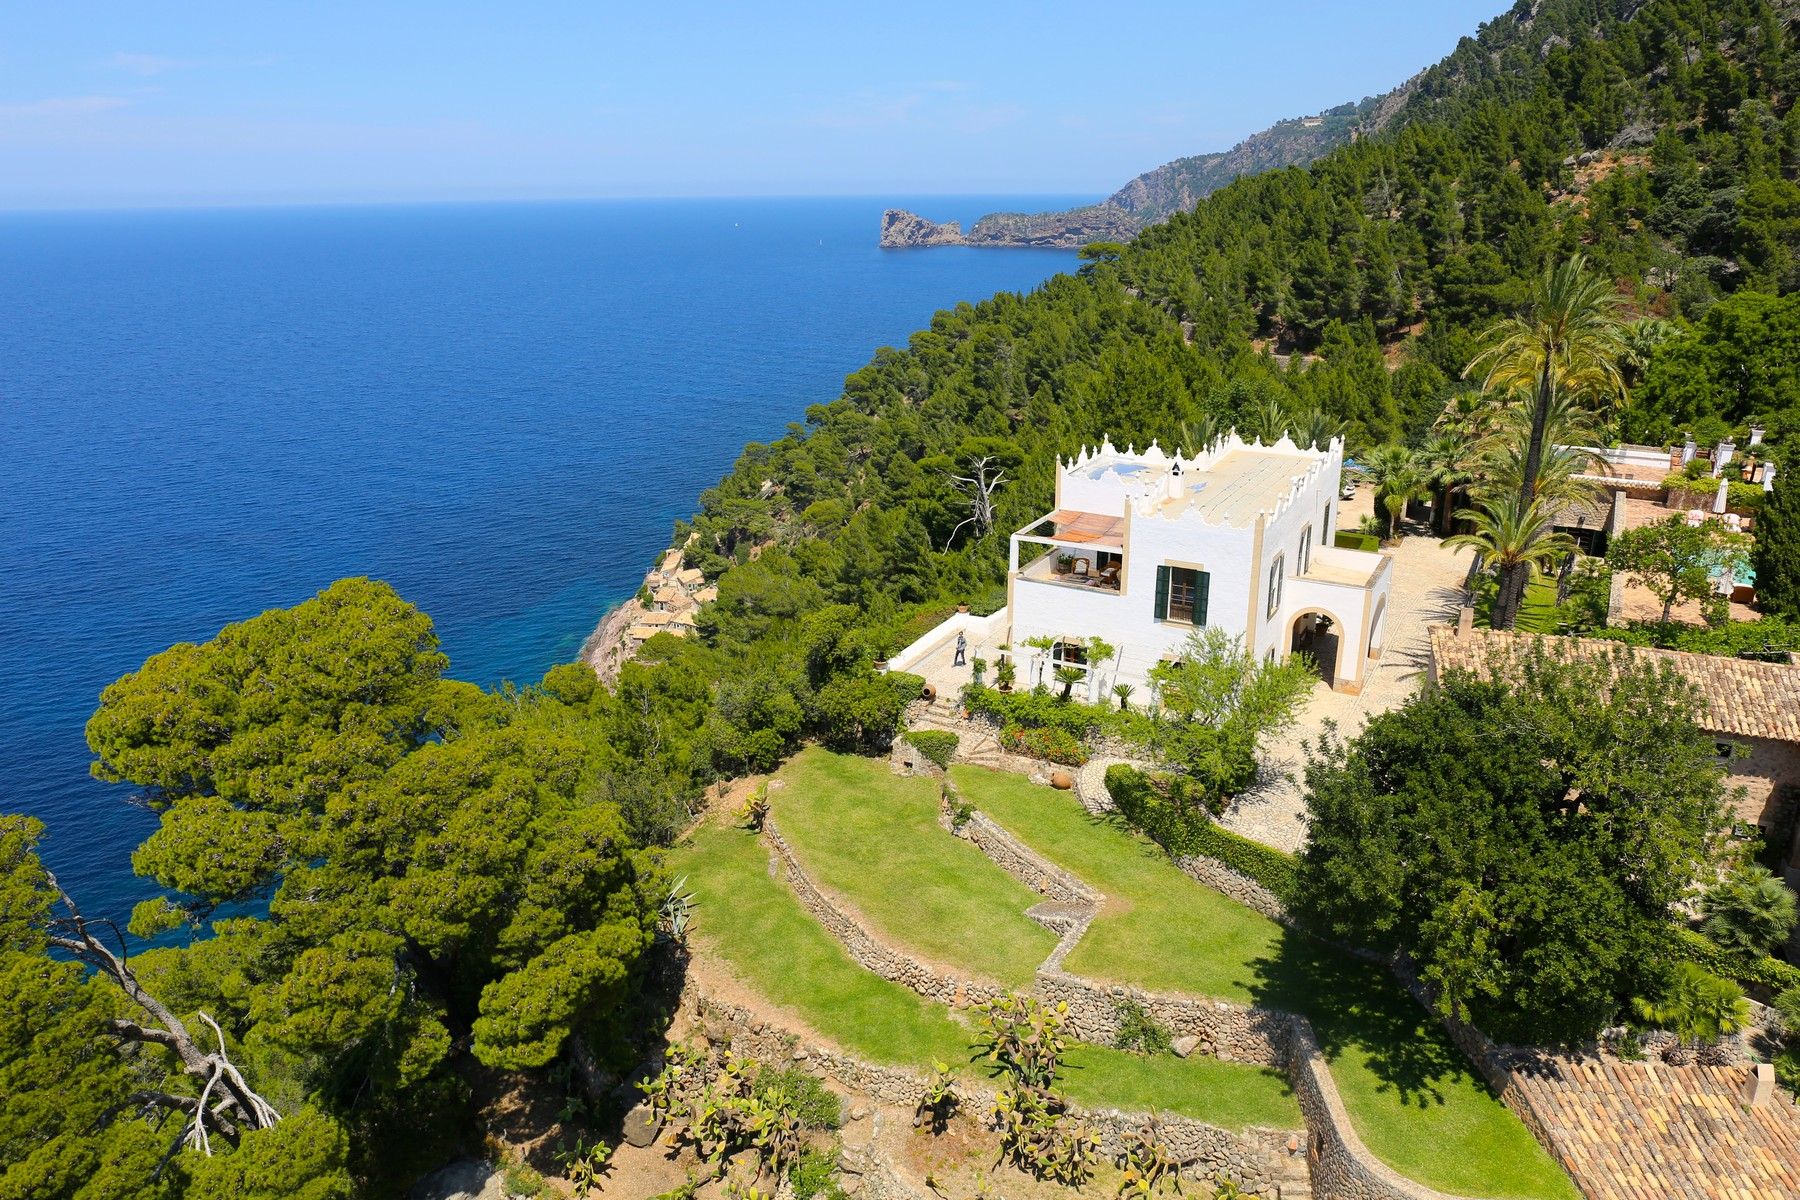 独户住宅 为 销售 在 Spectacular Mansion in Puerto Valldemossa Valldemossa, 马洛卡 西班牙